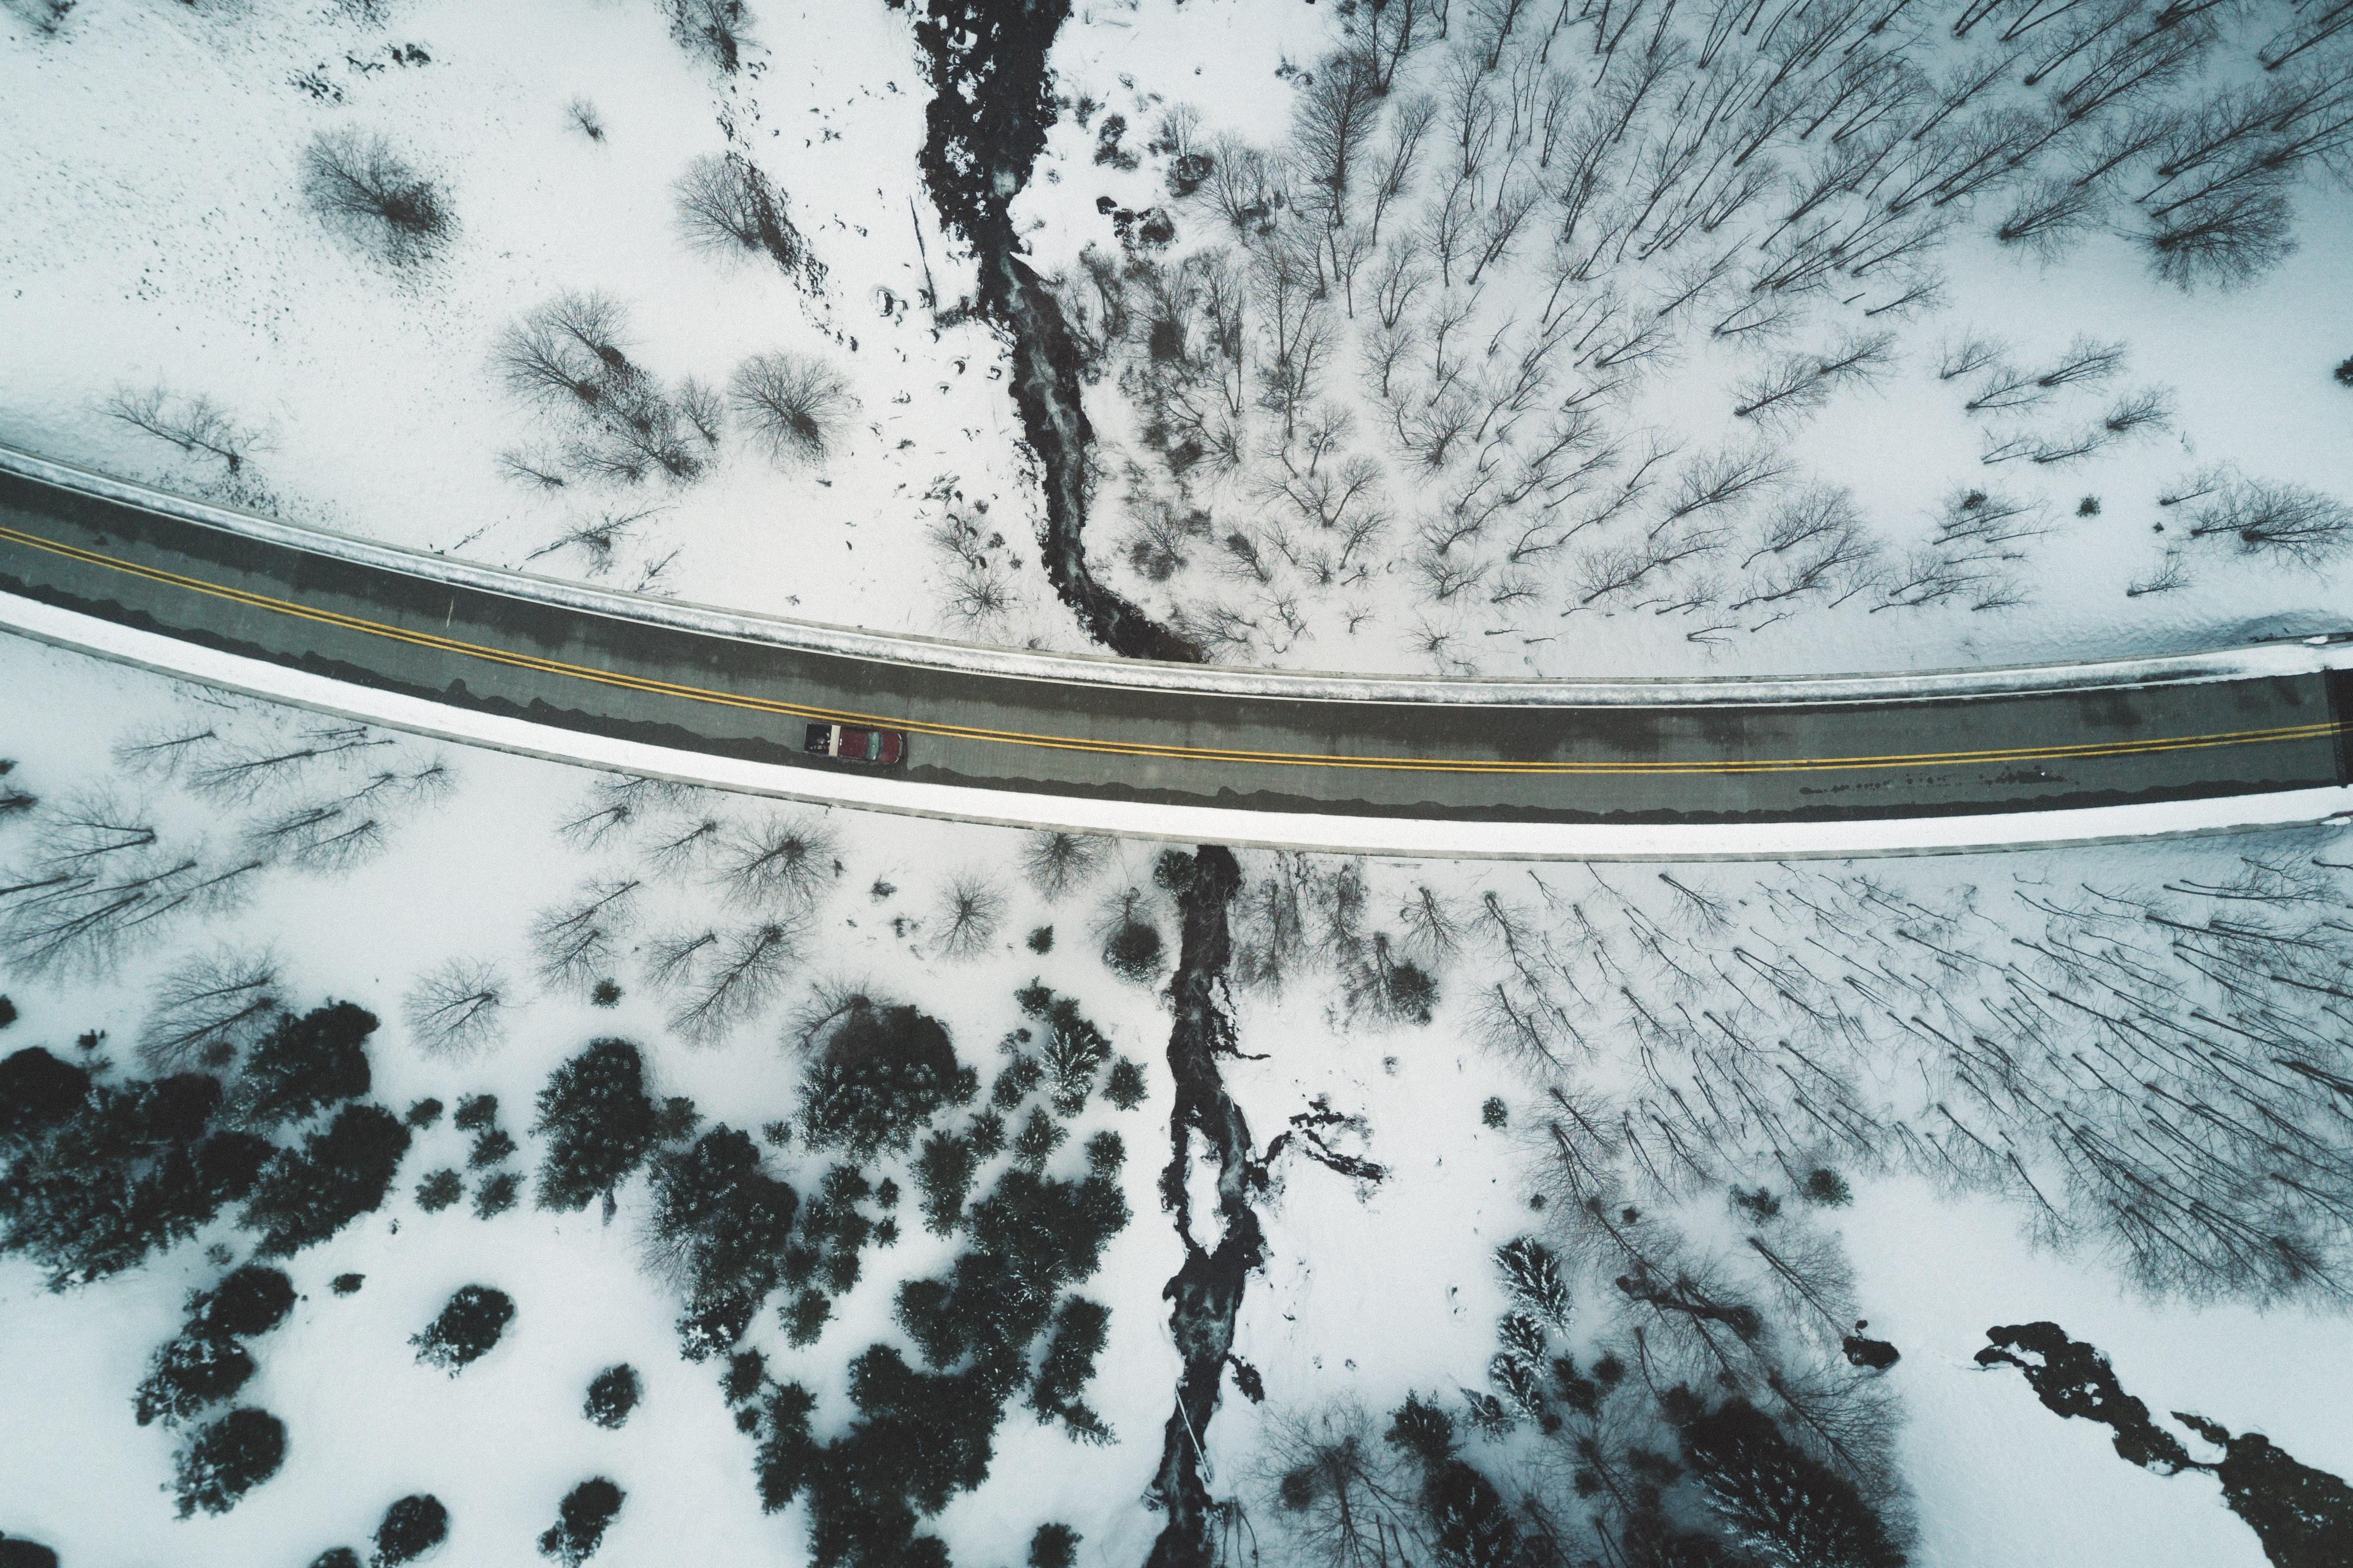 Drone shot of a car driving along a bend in a road in the winter